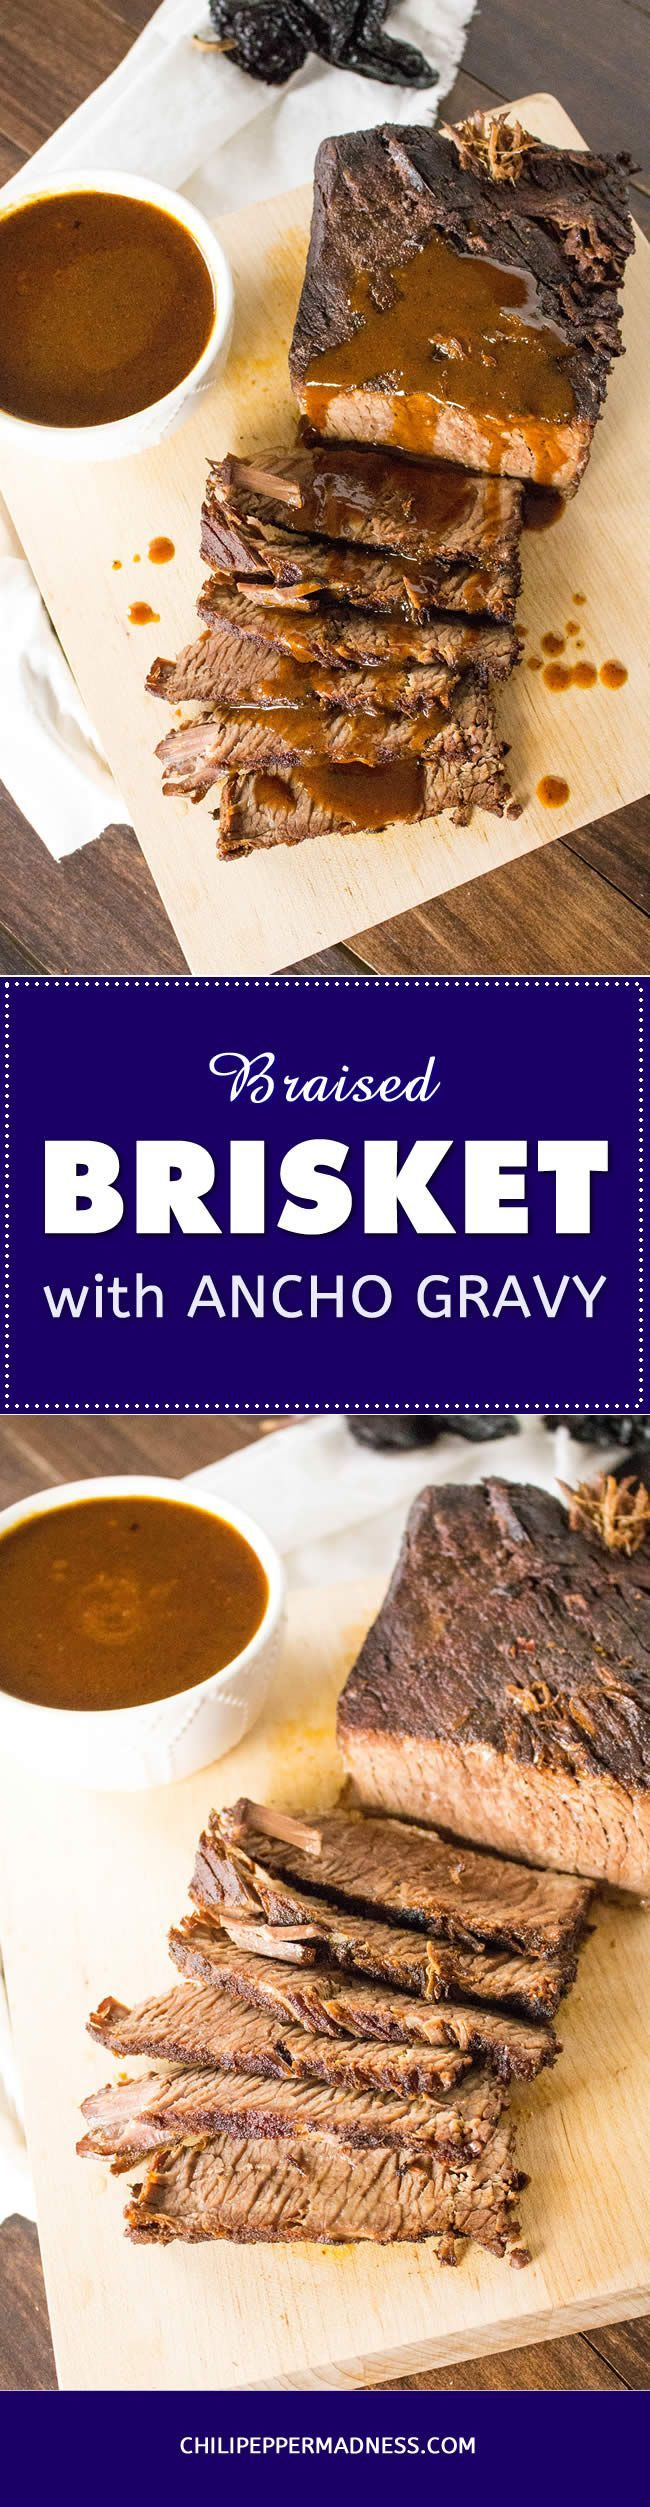 Braised Brisket with Ancho Gravy #texastwinkies